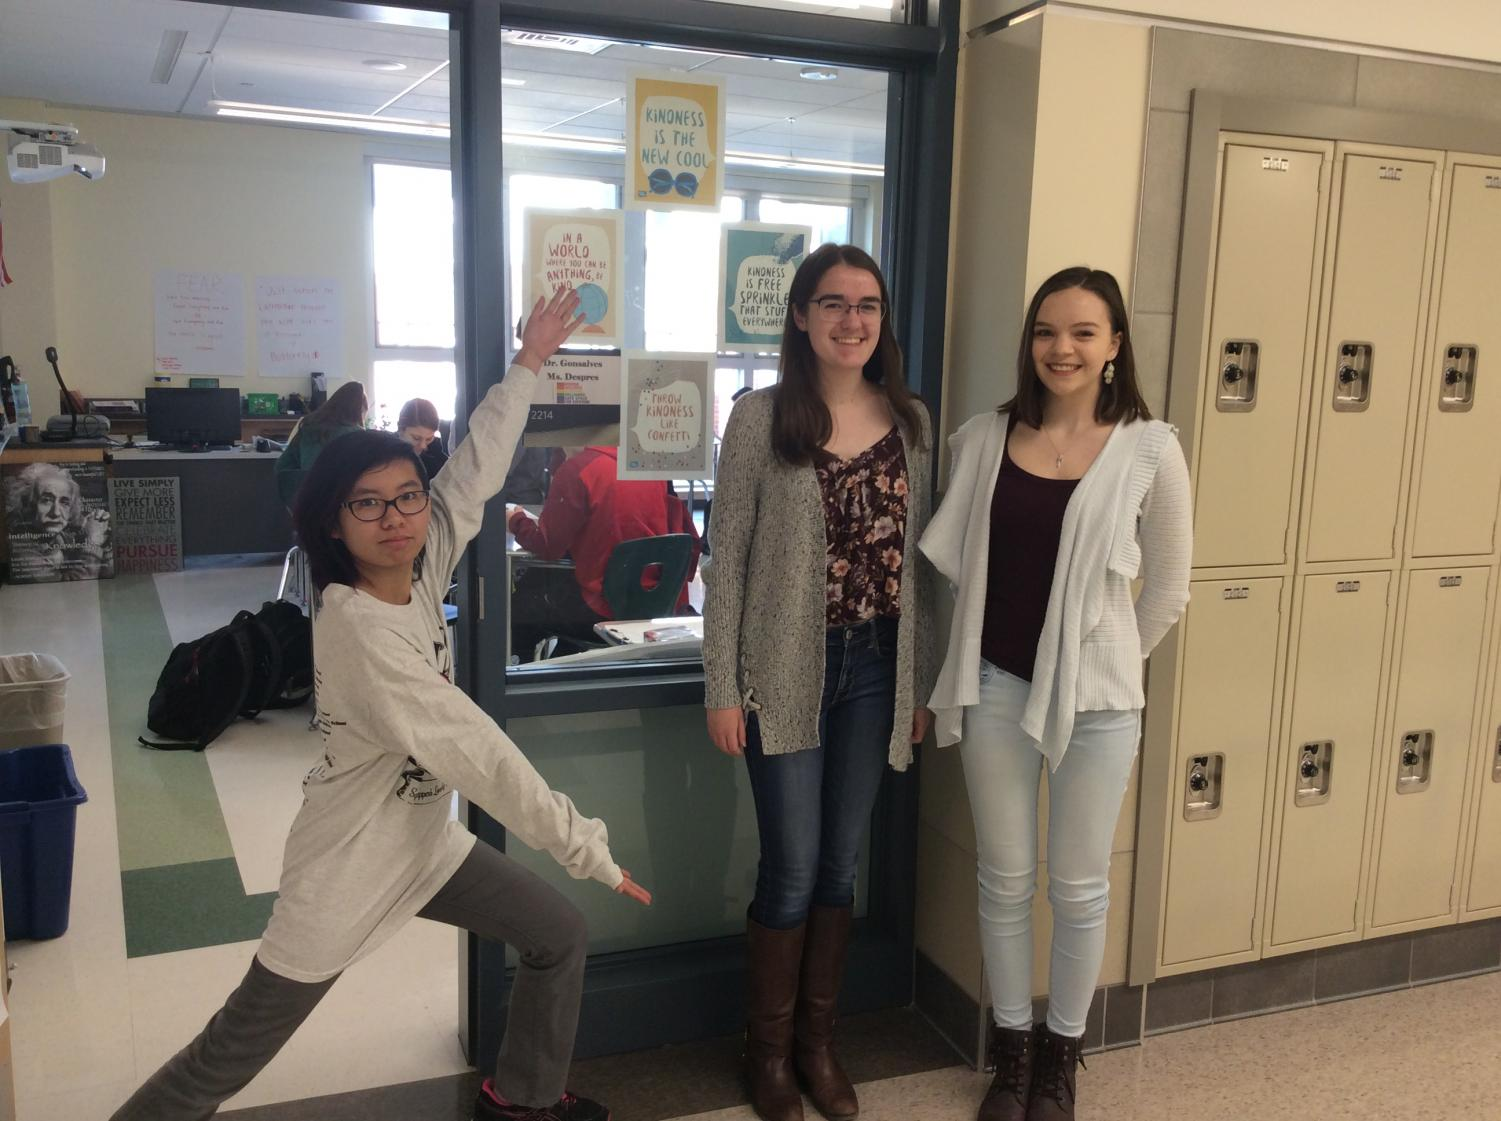 Word Masters Julia Do, Allison MacLeod, Madisen Caferro, and Lyla Blanchard (missing from photo)